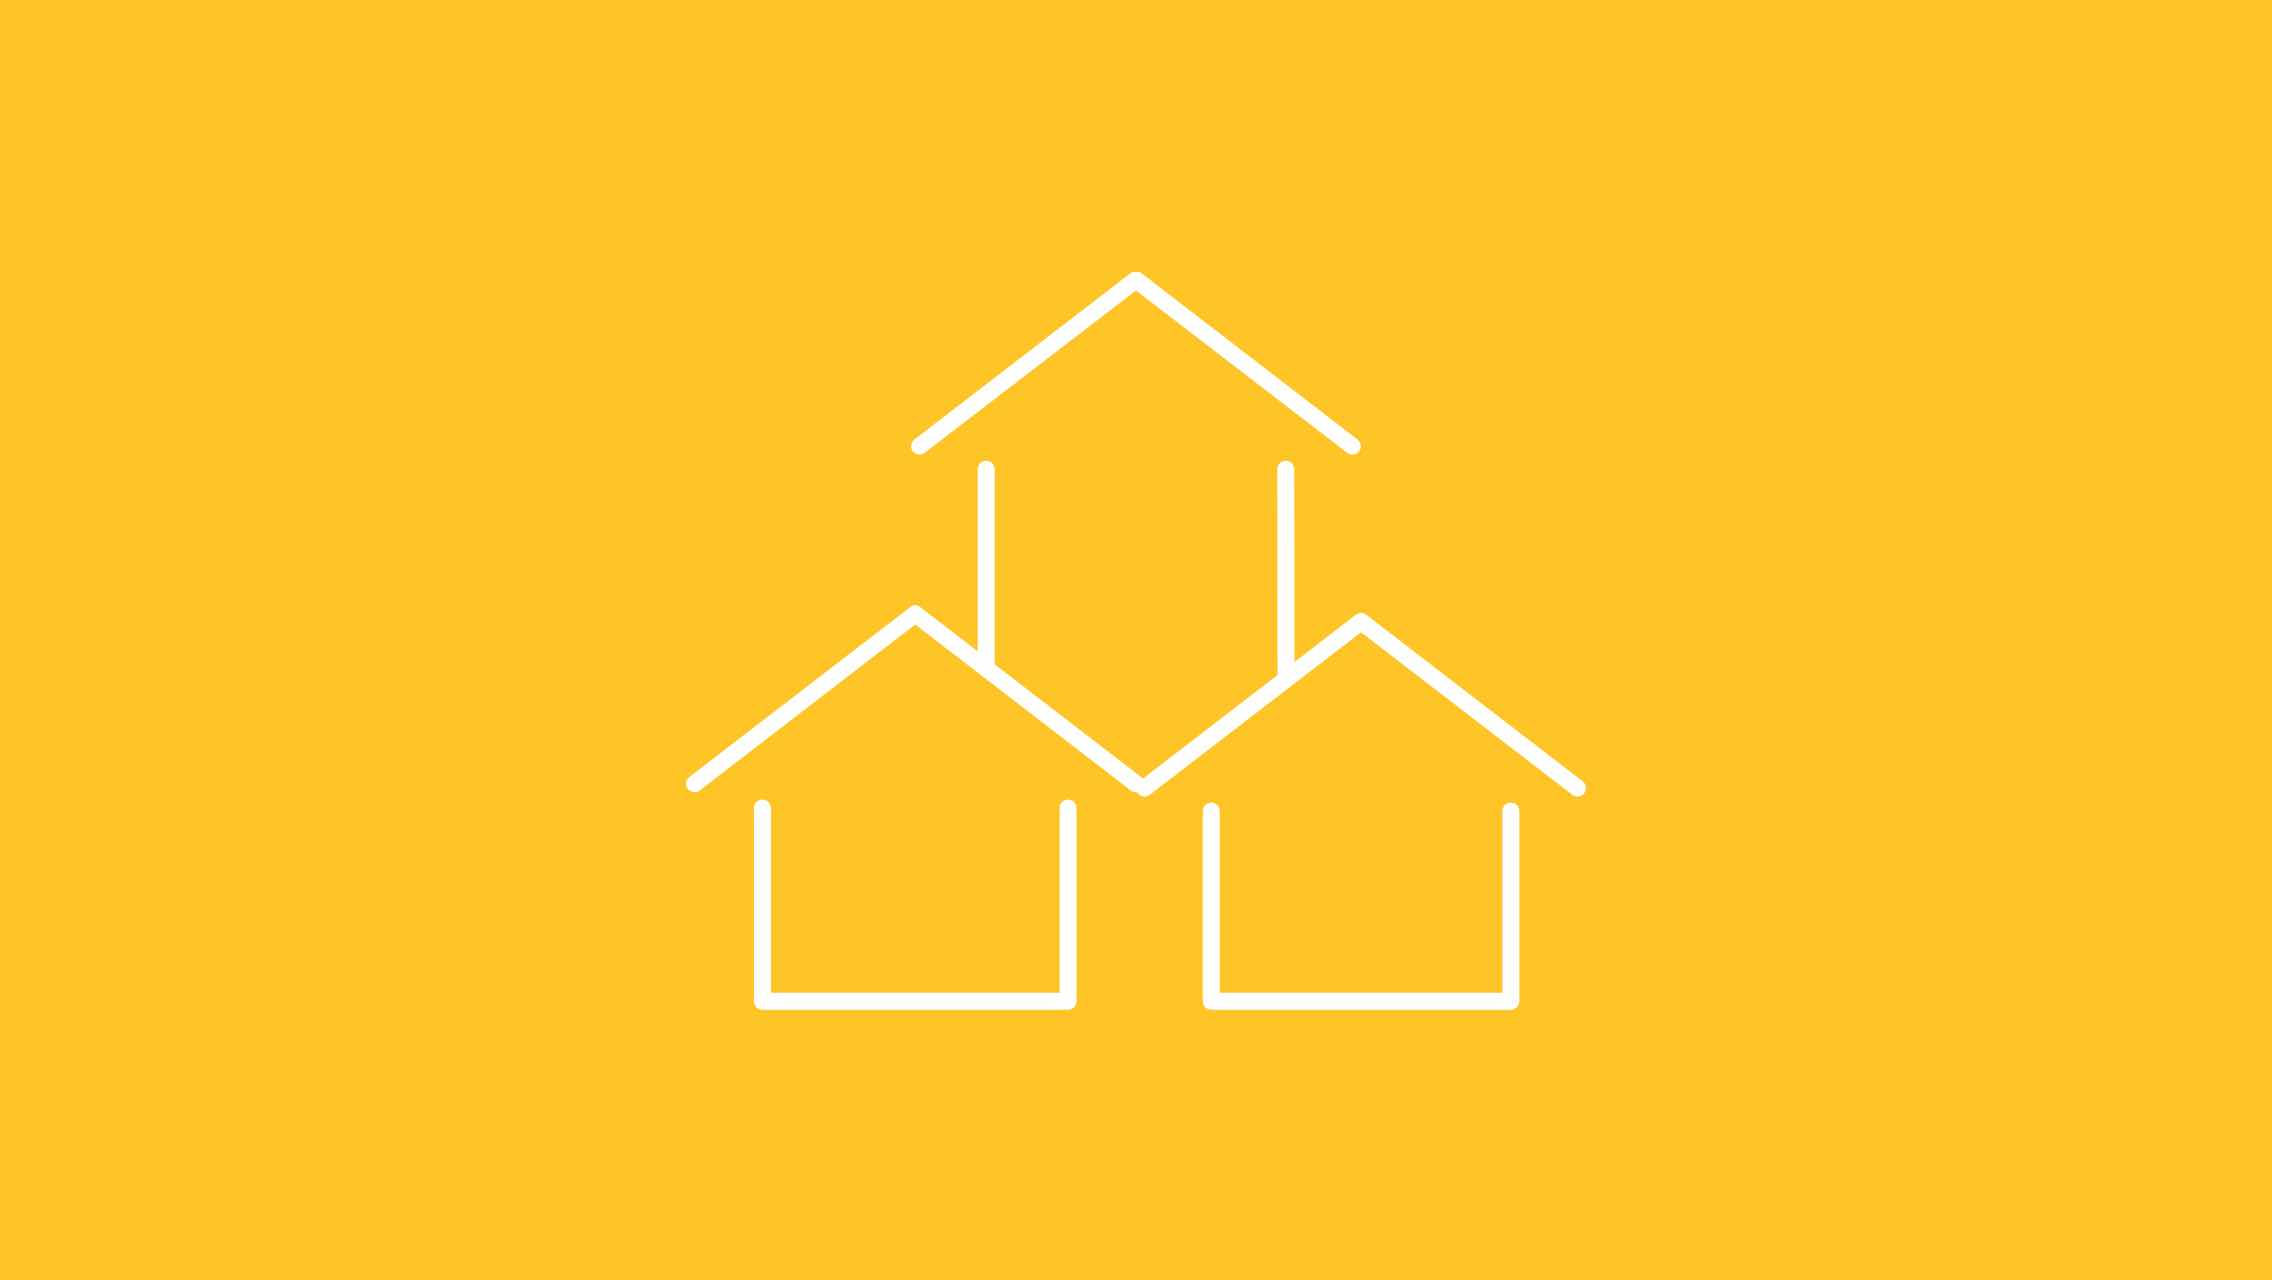 An illustration of three houses on a yellow background.